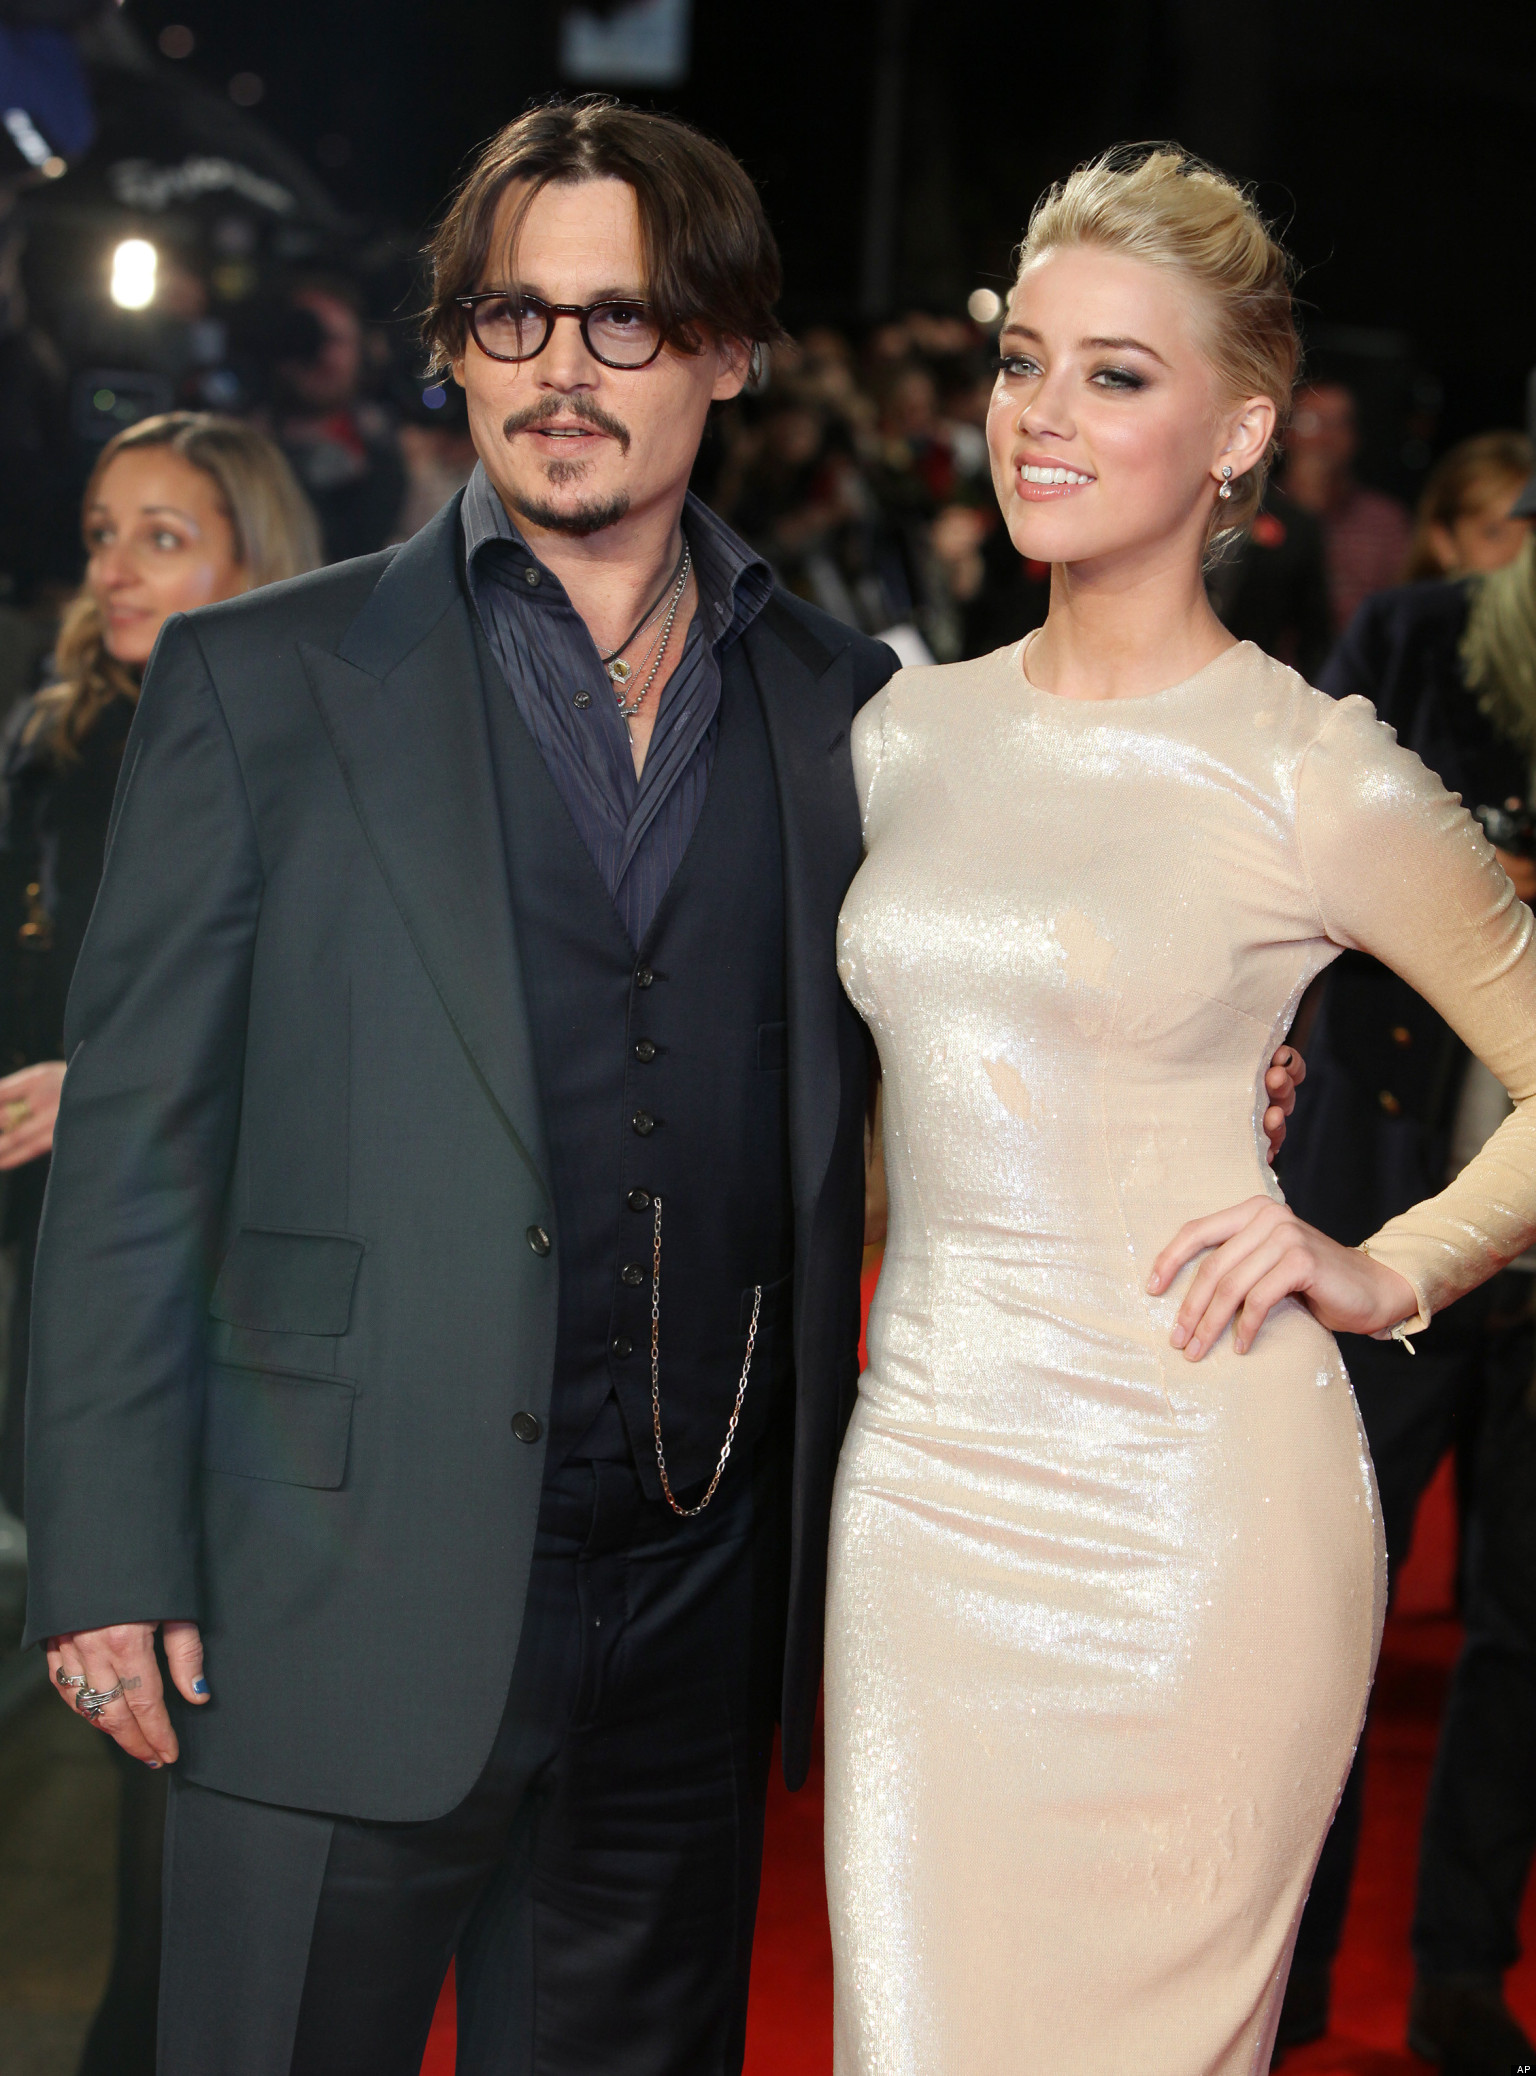 Amber Heard and husband Johnny Depp's marriage going the wrong way